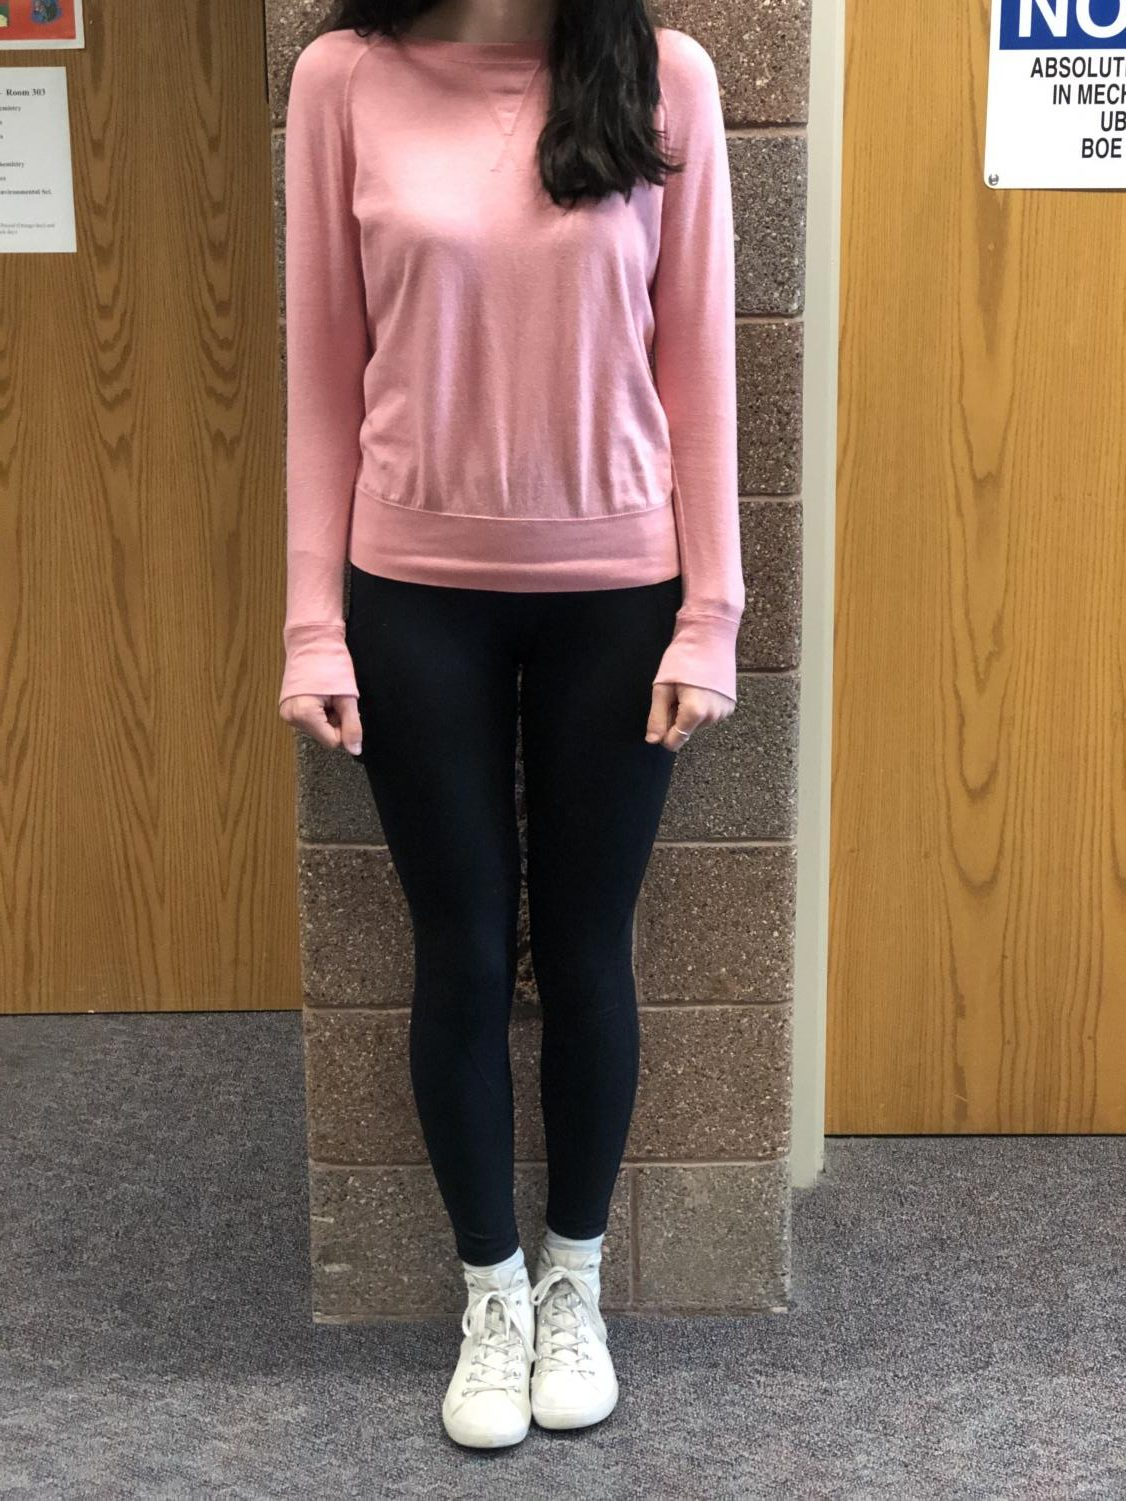 Annika Hankenson 12 shares an experience from her freshman year when she was nominated for the Voyager's International Trip.